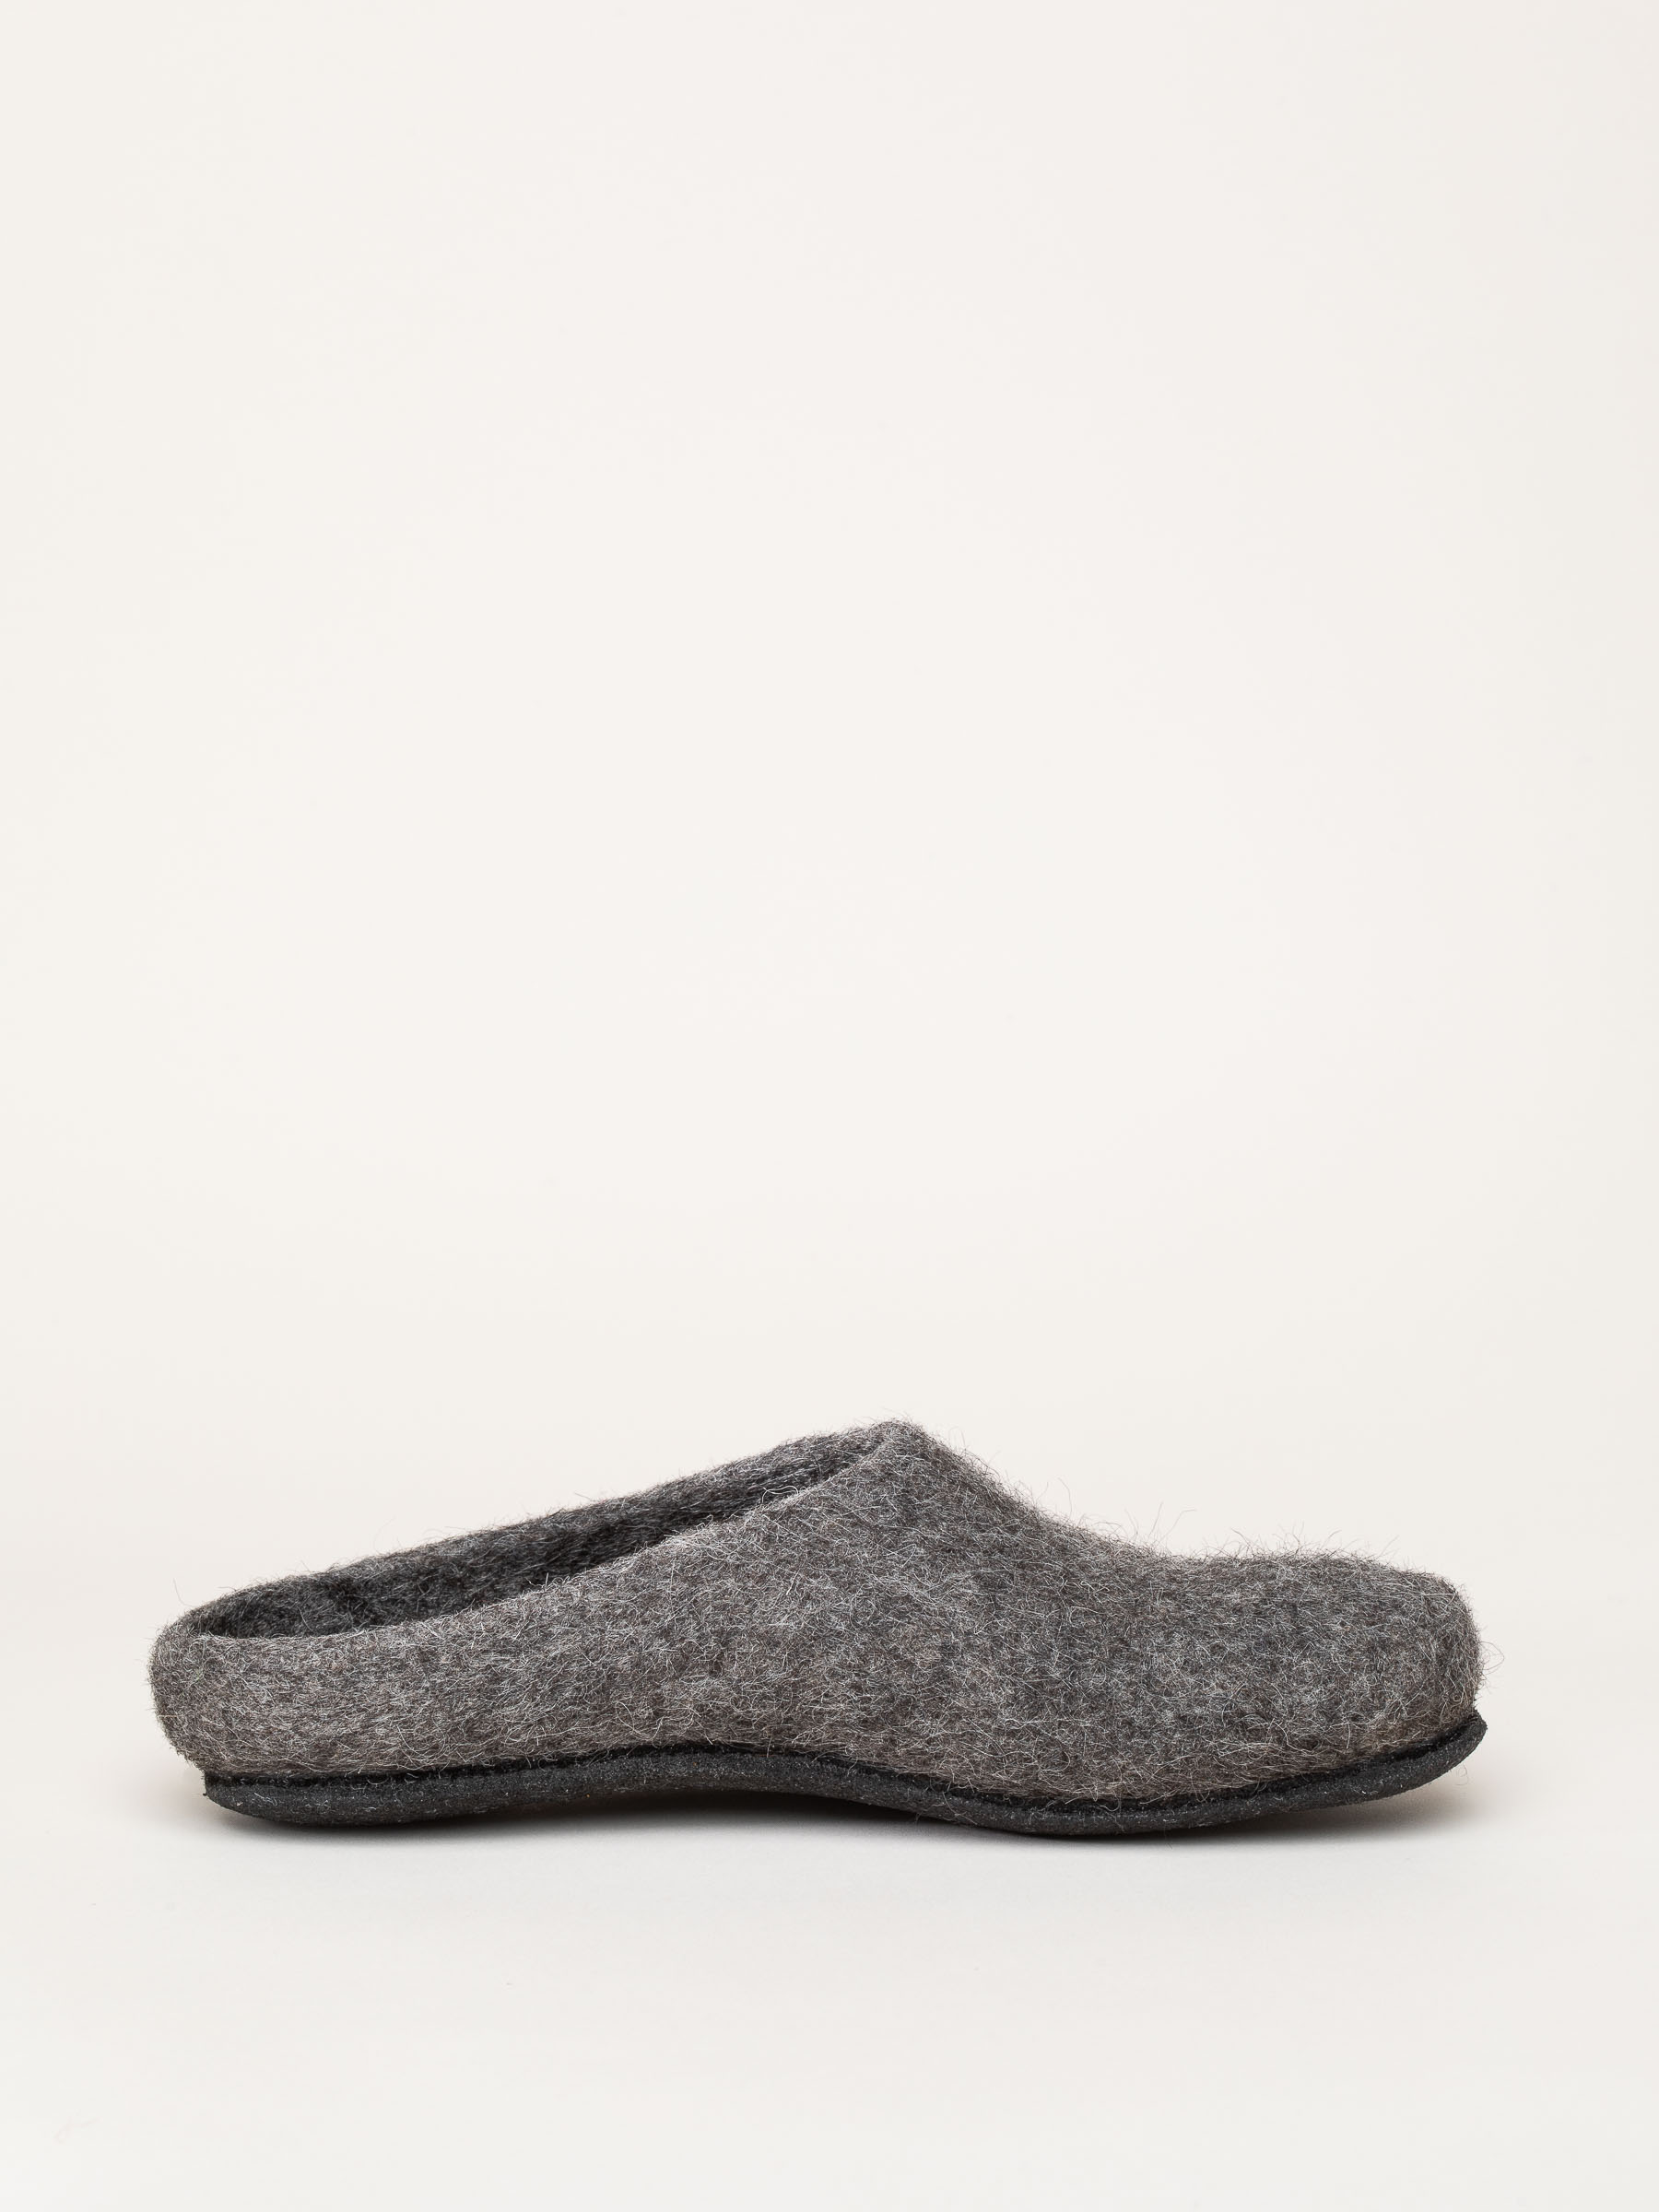 AT 719 rare wool slippers